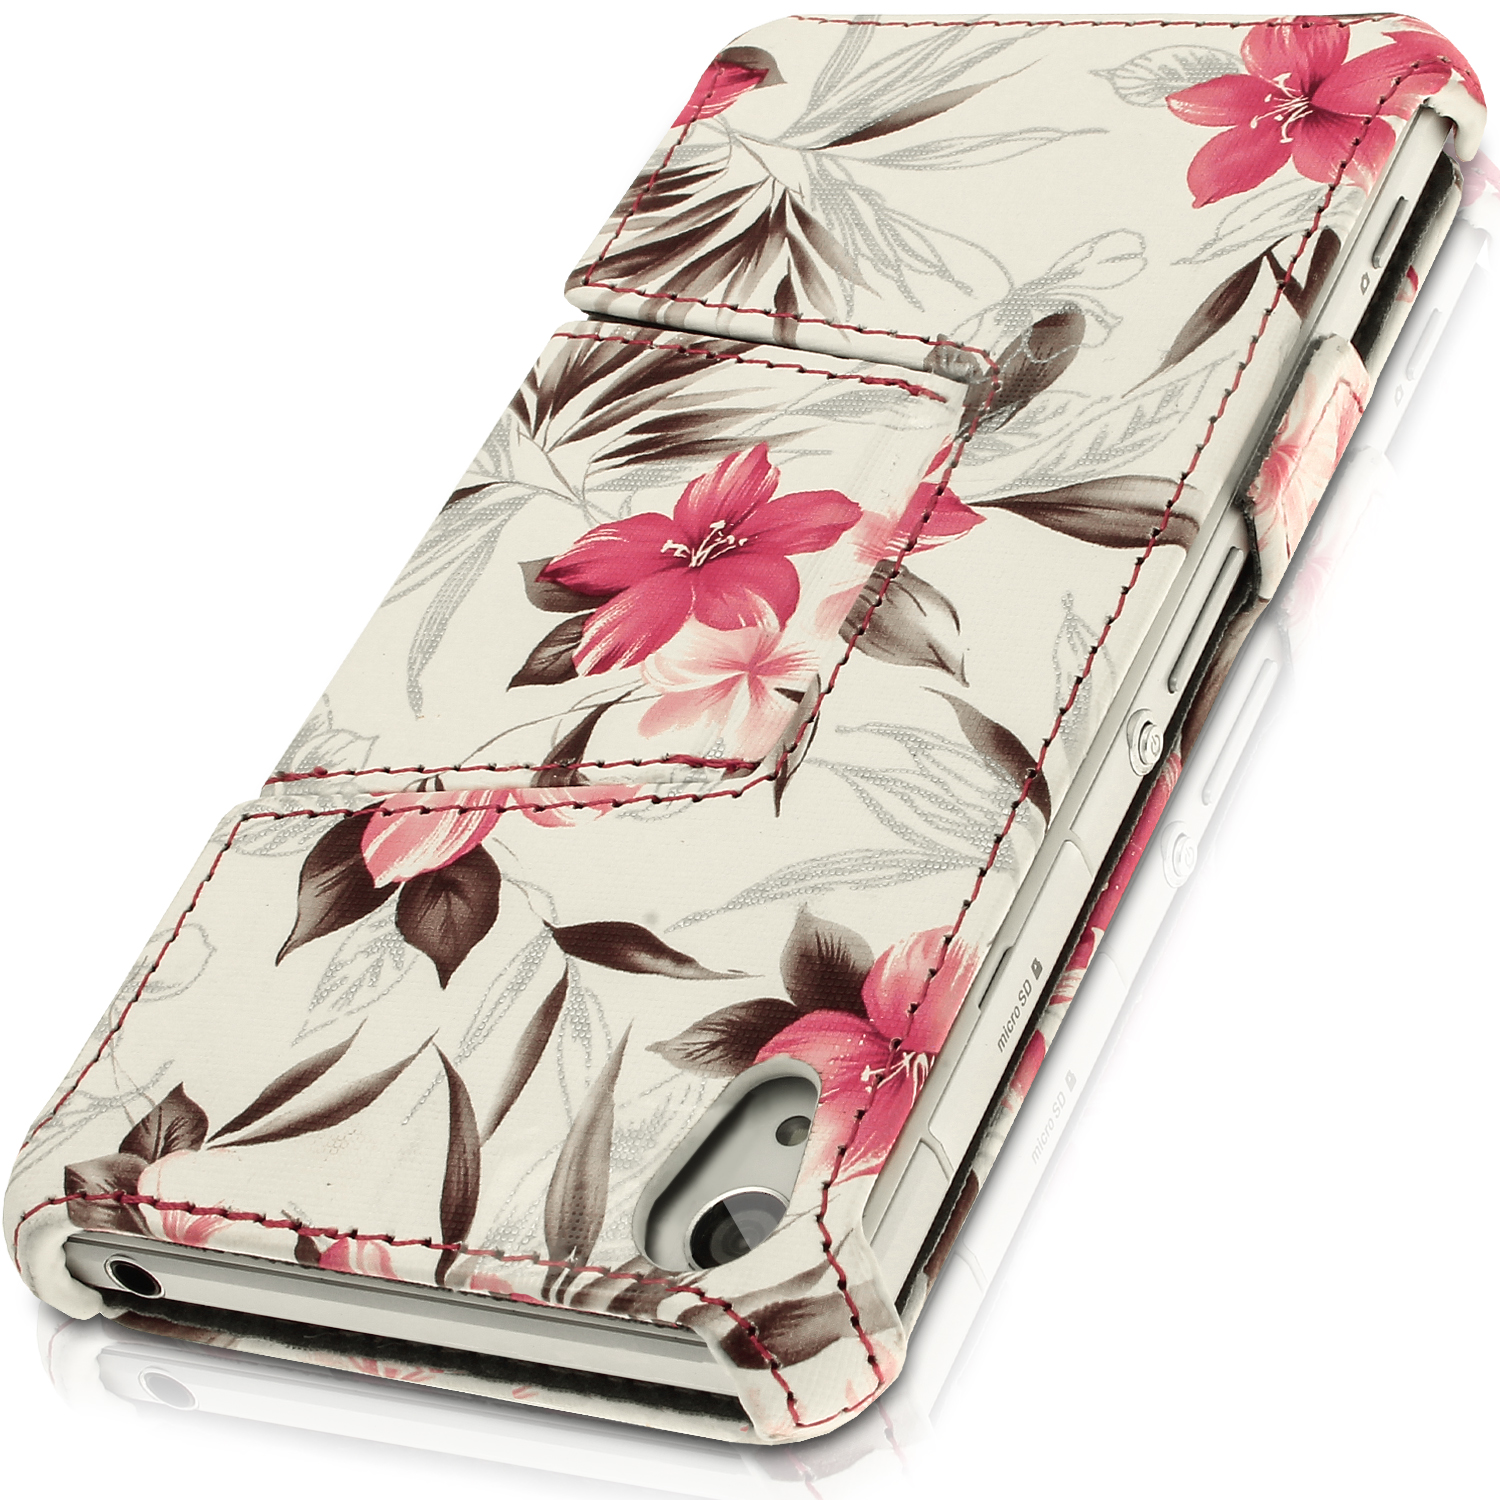 PU-Leather-Stand-Case-Cover-for-Sony-Xperia-Z2-D6503-D6543-Screen-Protector